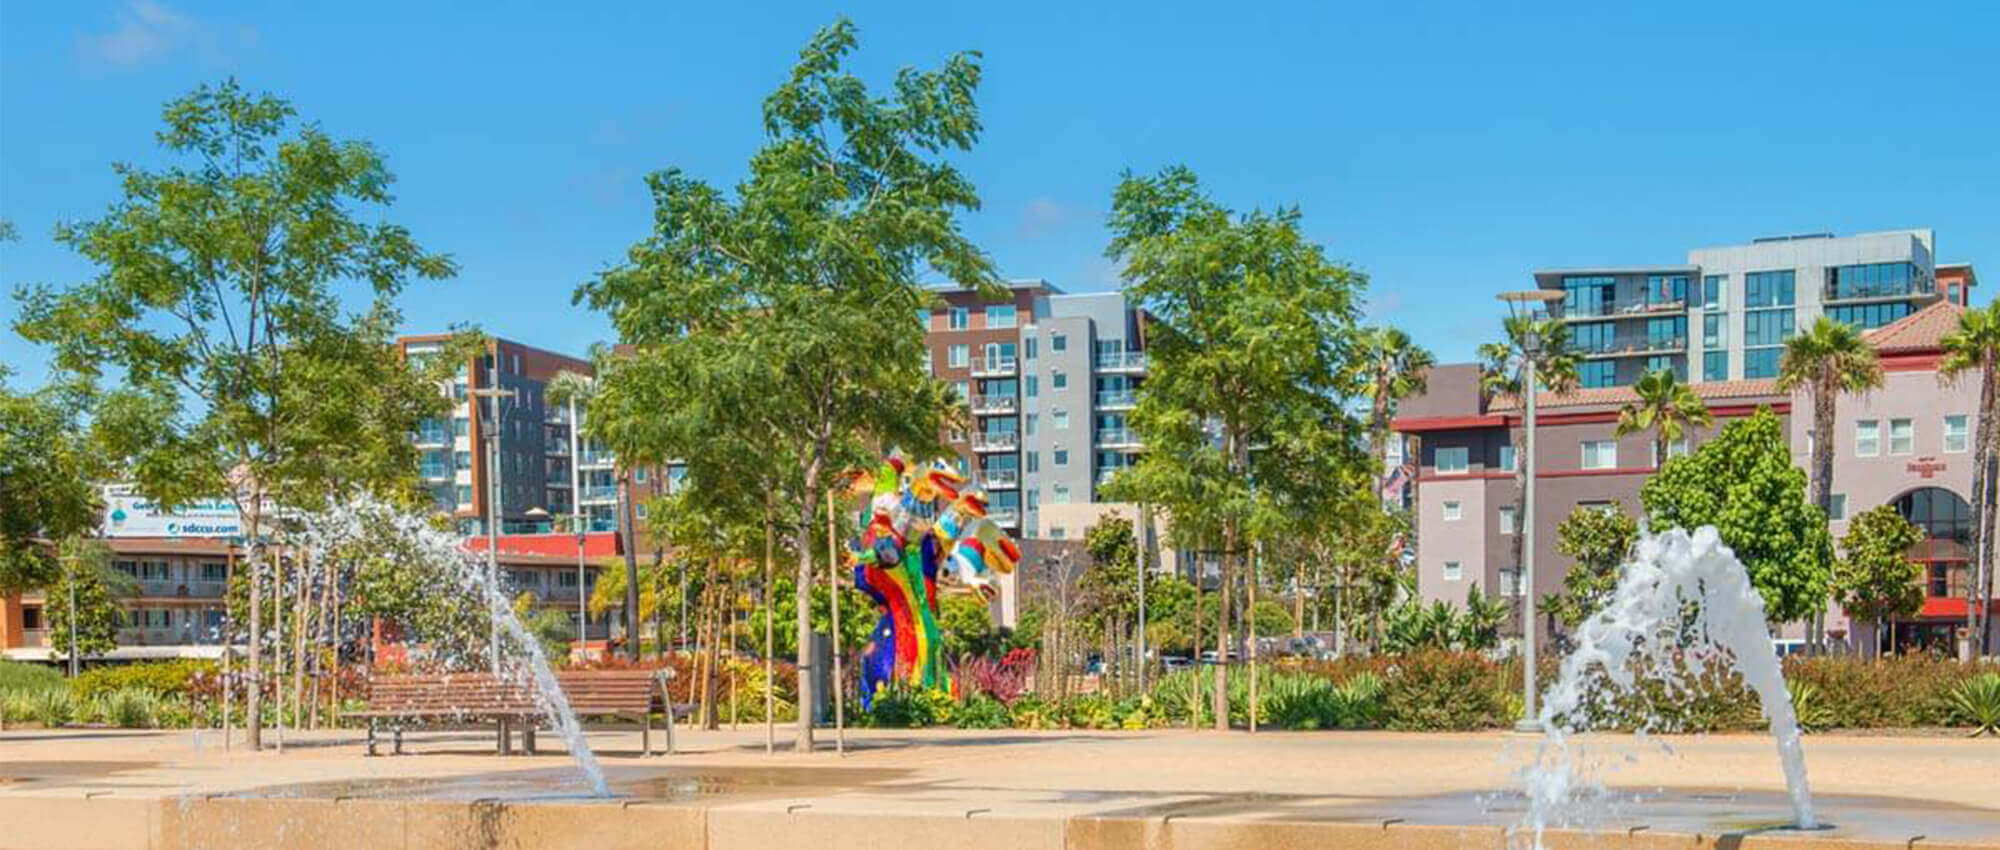 Ultimate Guide to Seaport Village